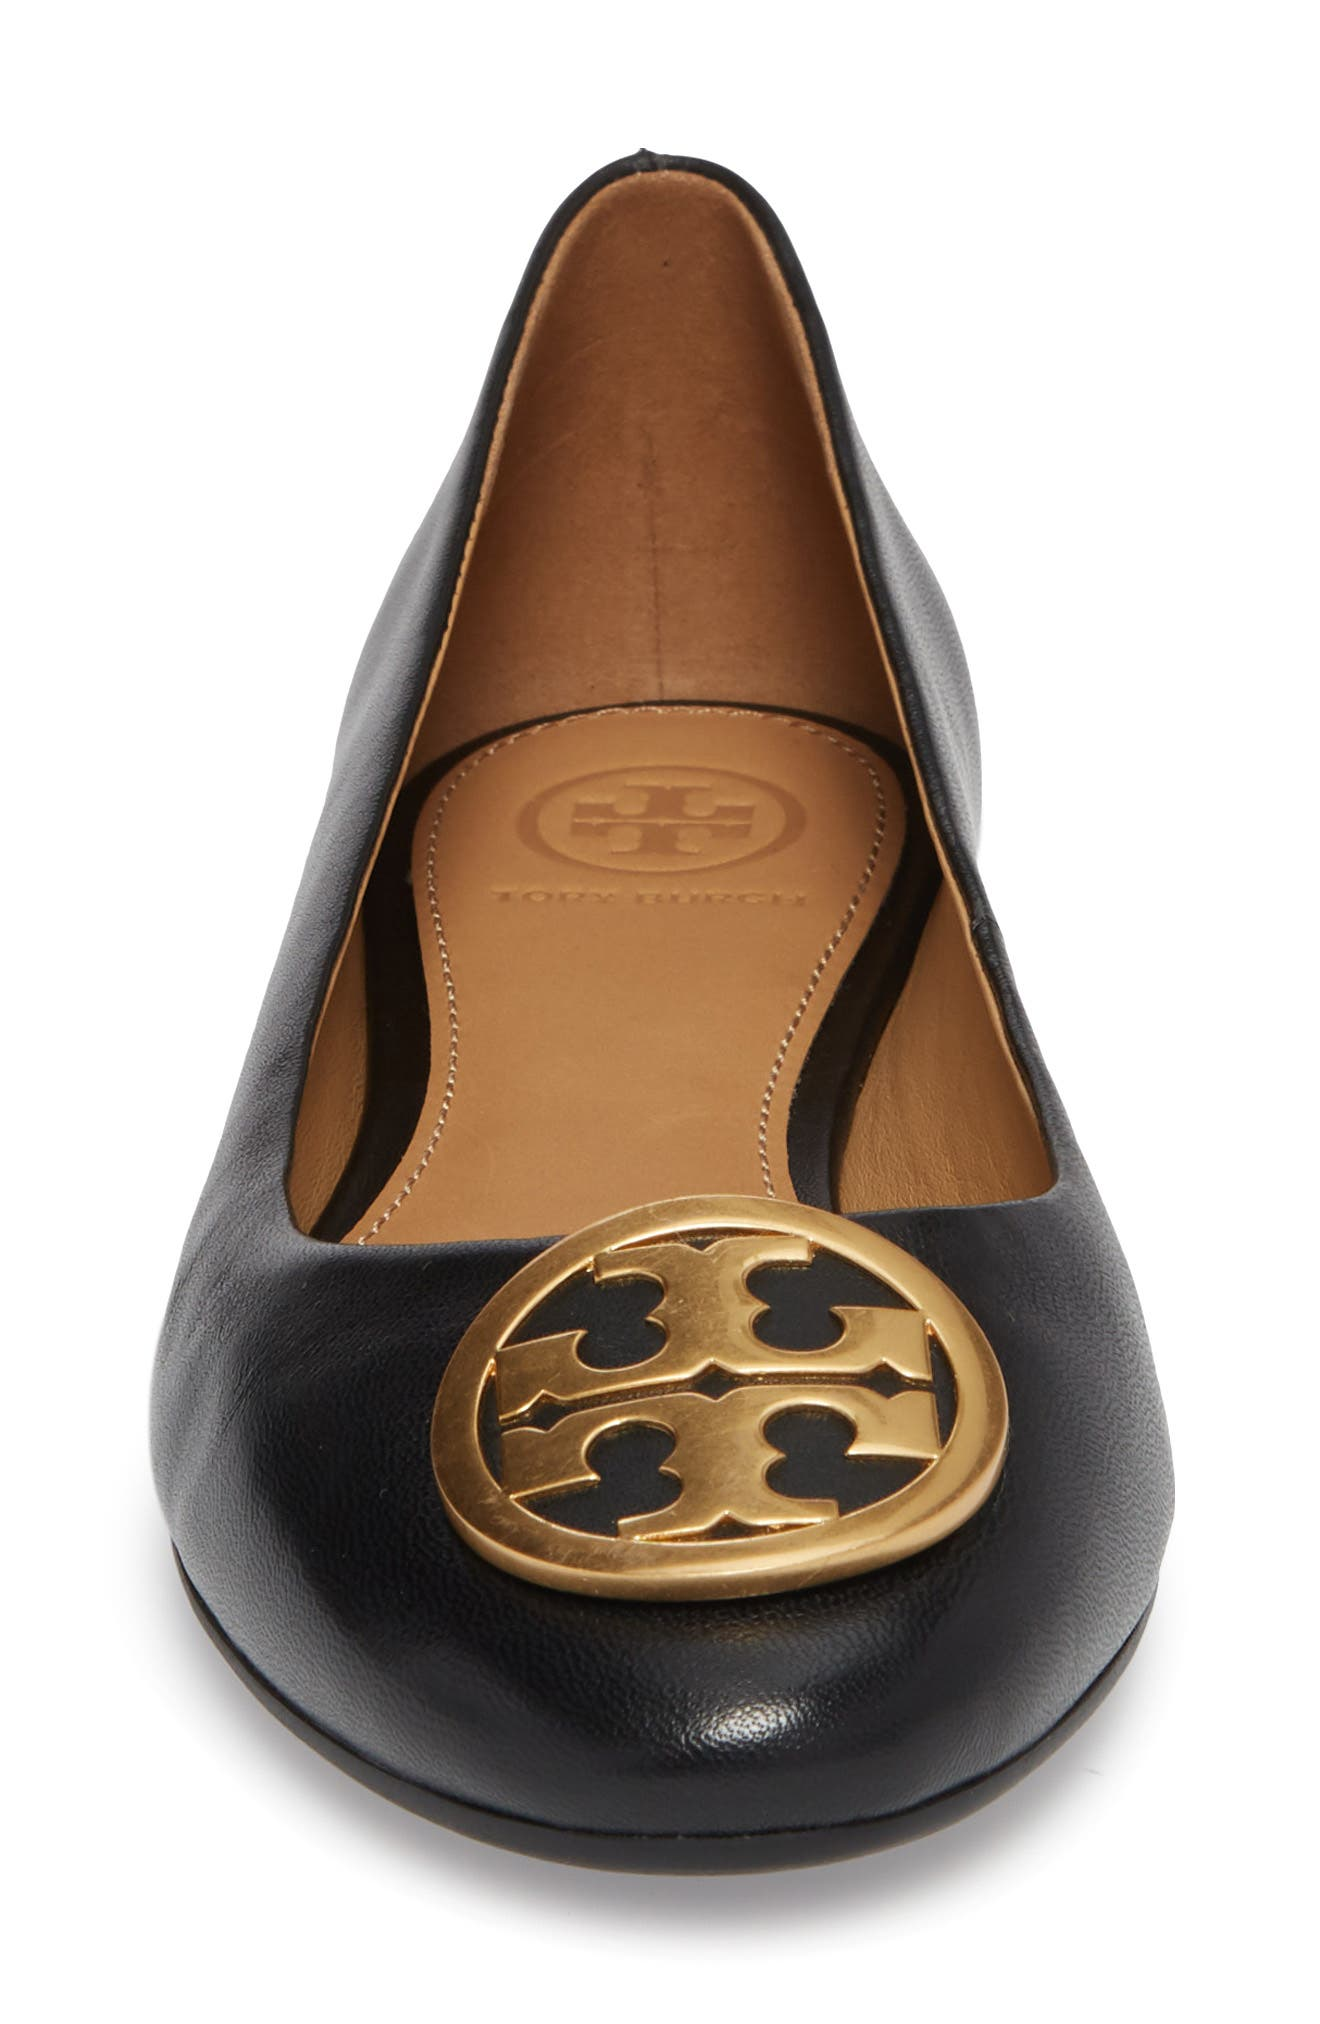 TORY BURCH,                             Benton Ballet Flat,                             Alternate thumbnail 4, color,                             006